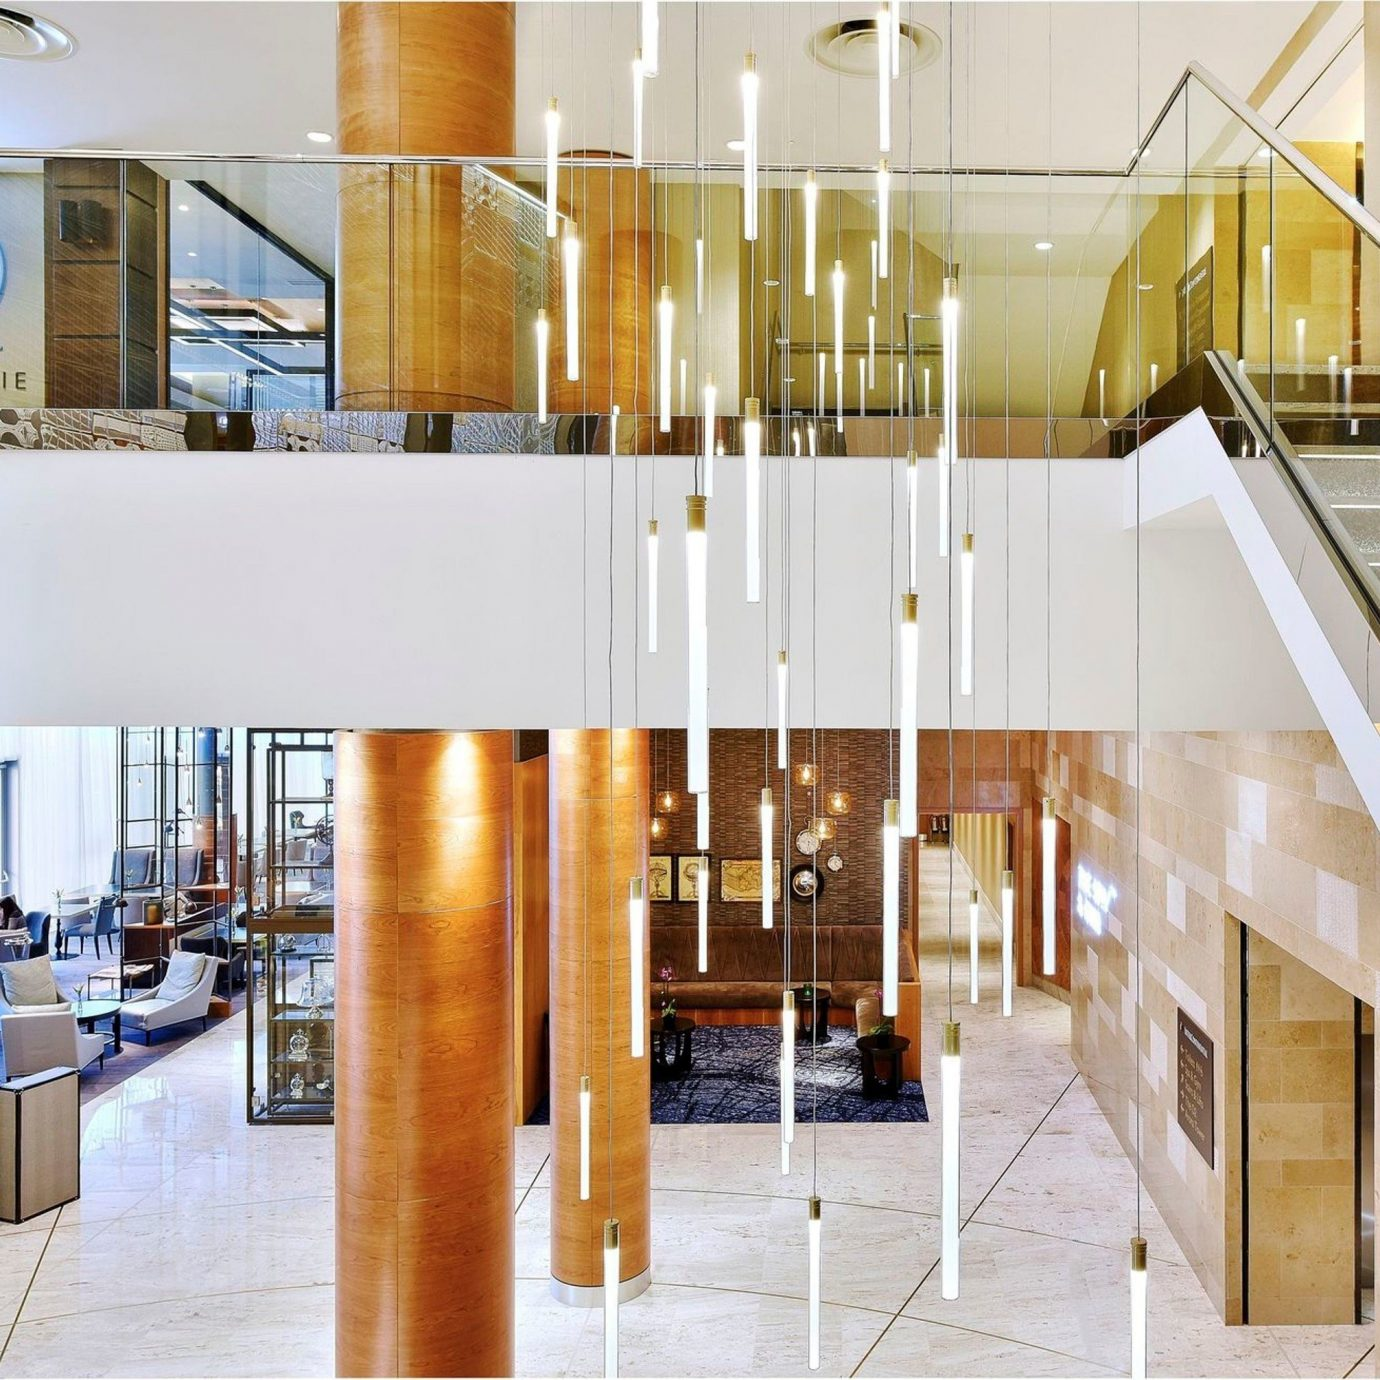 Architecture daylighting home Lobby headquarters